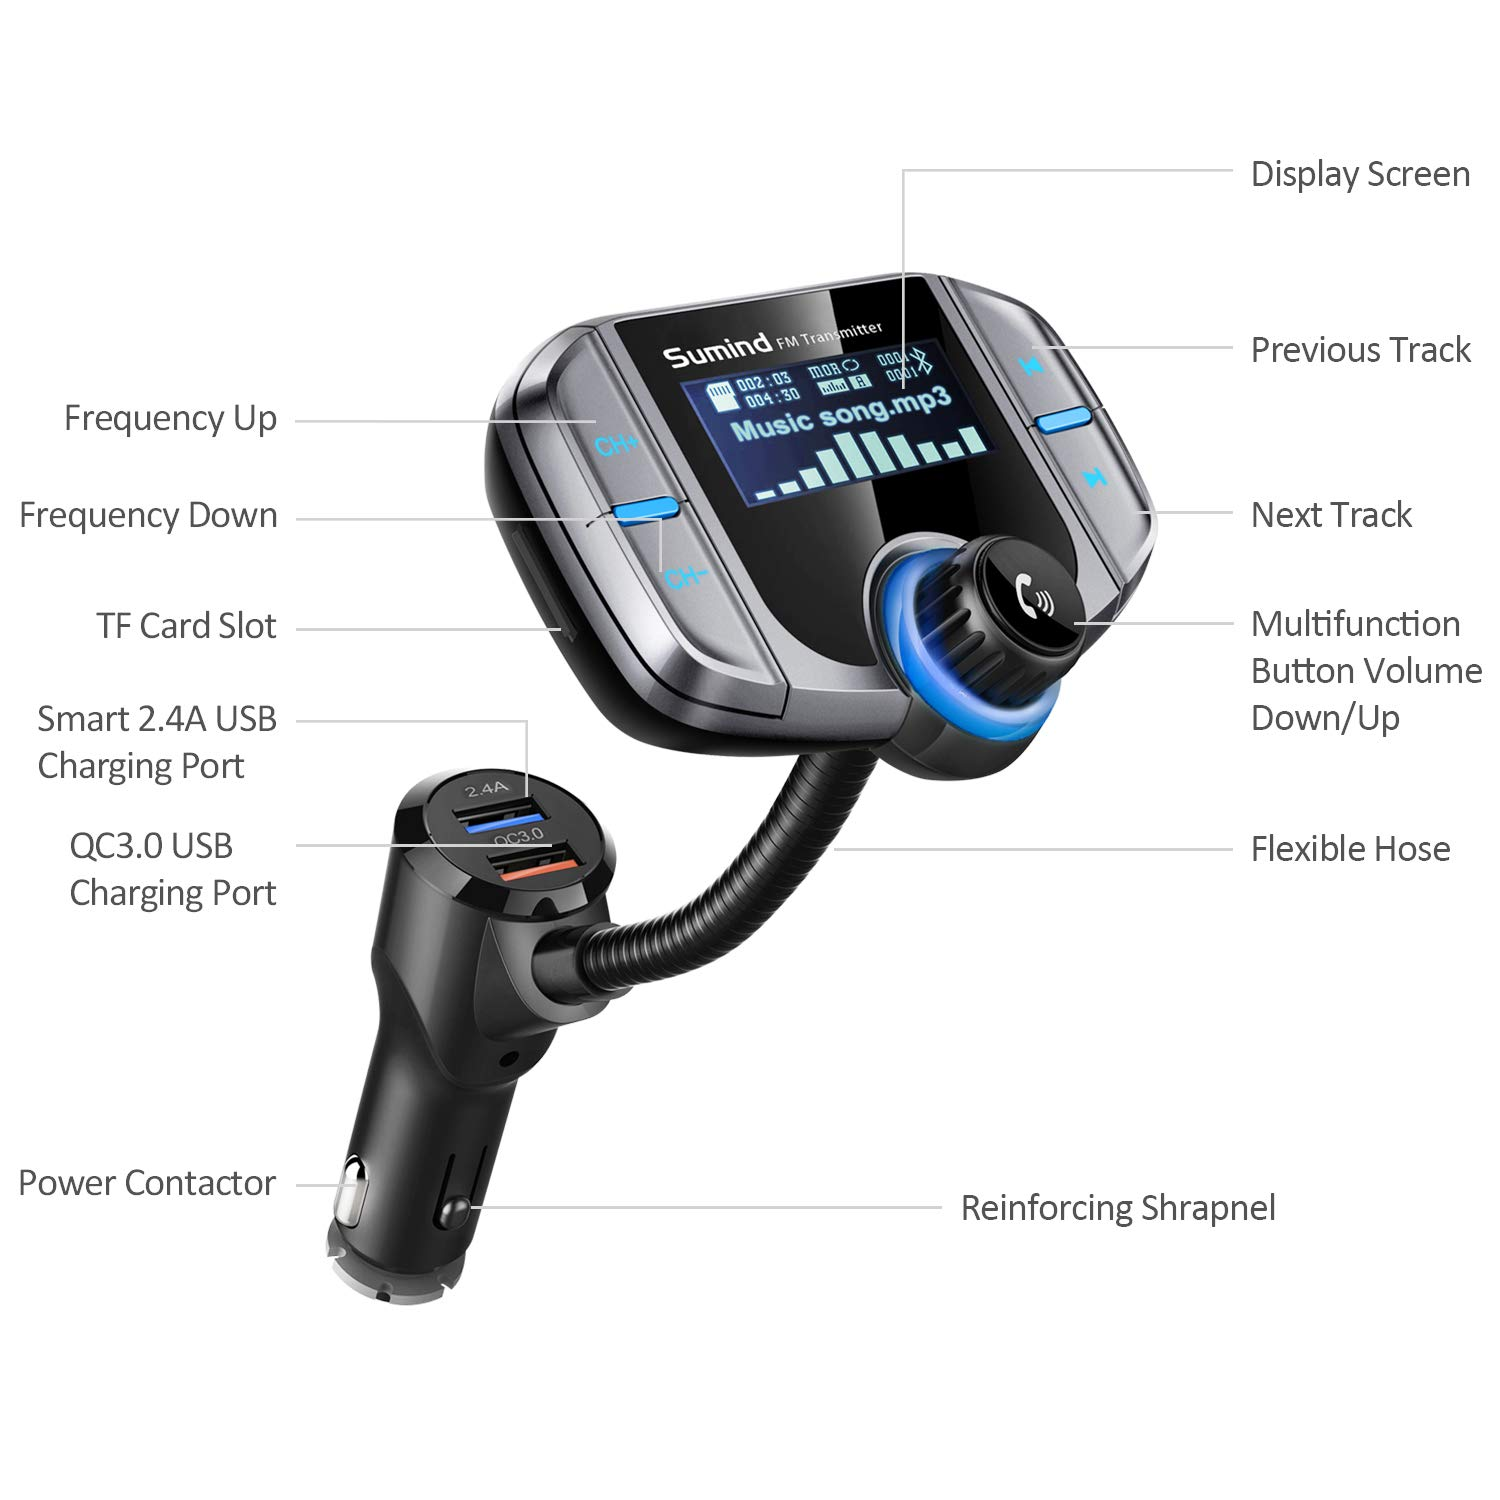 QC3.0//2.4A Dual USB Ports Sumind Wireless Radio Adapter AUX Input//Output Bluetooth Car Transmitter 1.7 Inch Display Mp3 Player with Magnetic Mount and Plate BT70B Car Bluetooth Fm Transmitter